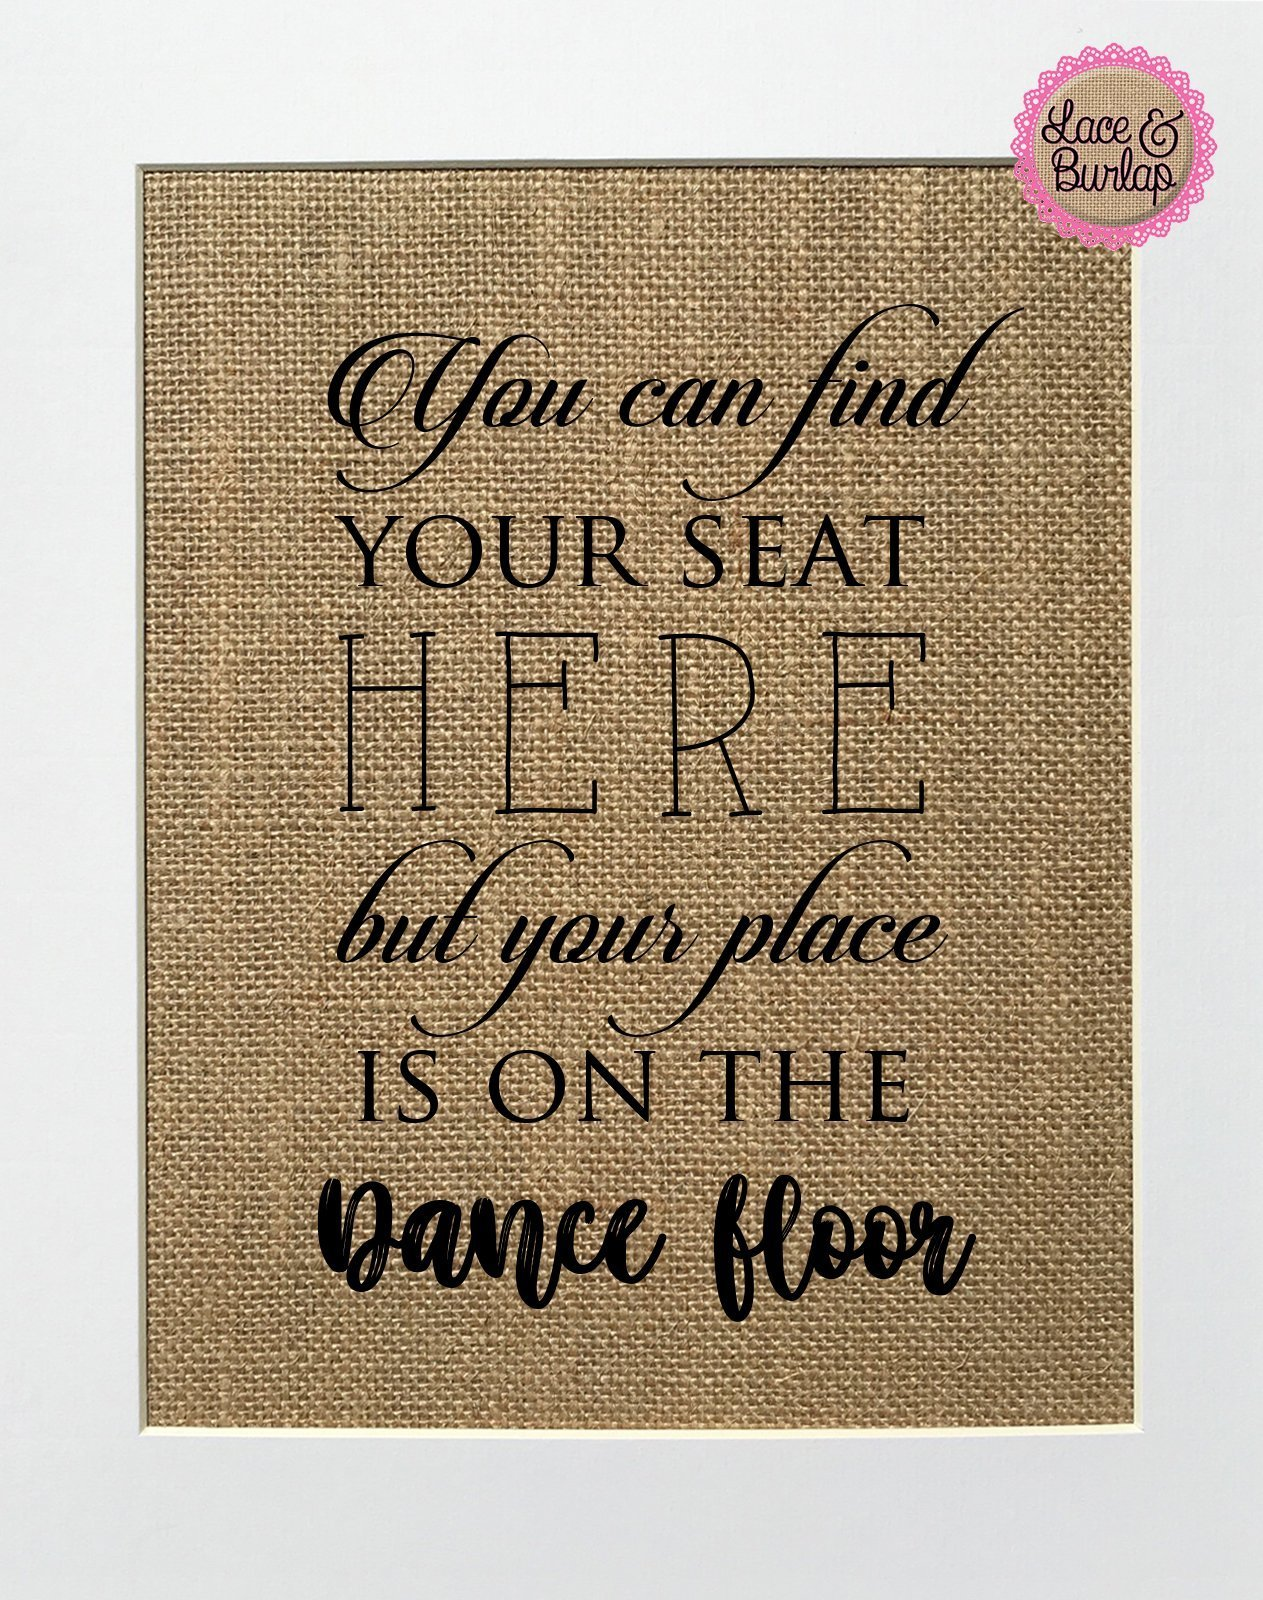 8x10 UNFRAMED You Can Find Your Seat Here But Your Place is On The Dance Floor / Burlap Print Sign / Wedding Rustic Vintage Sign Seating Chart Wedding Decor